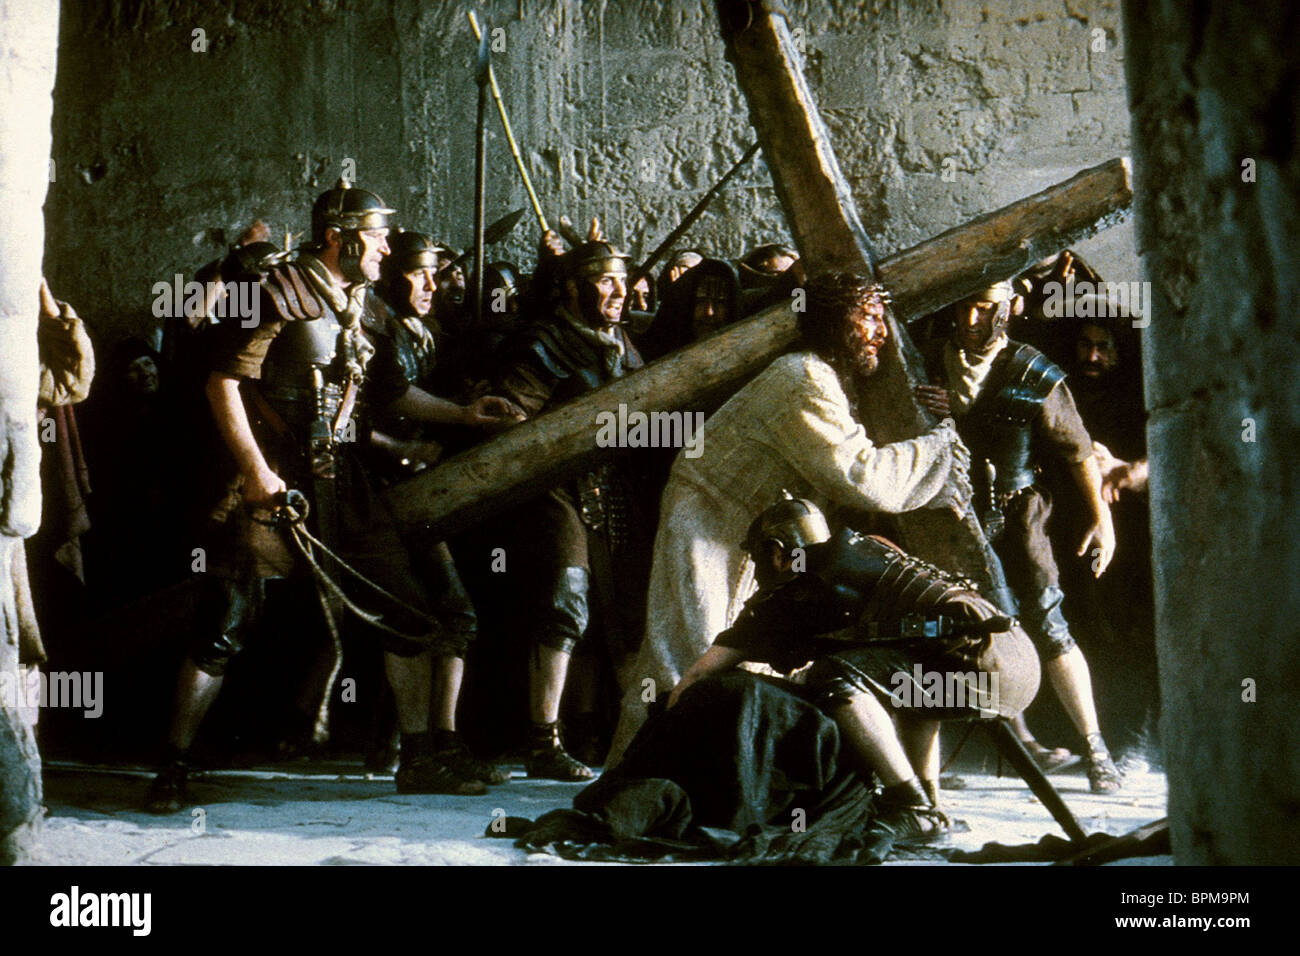 JAMES CAVIEZEL THE PASSION OF THE CHRIST (2004) - Stock Image